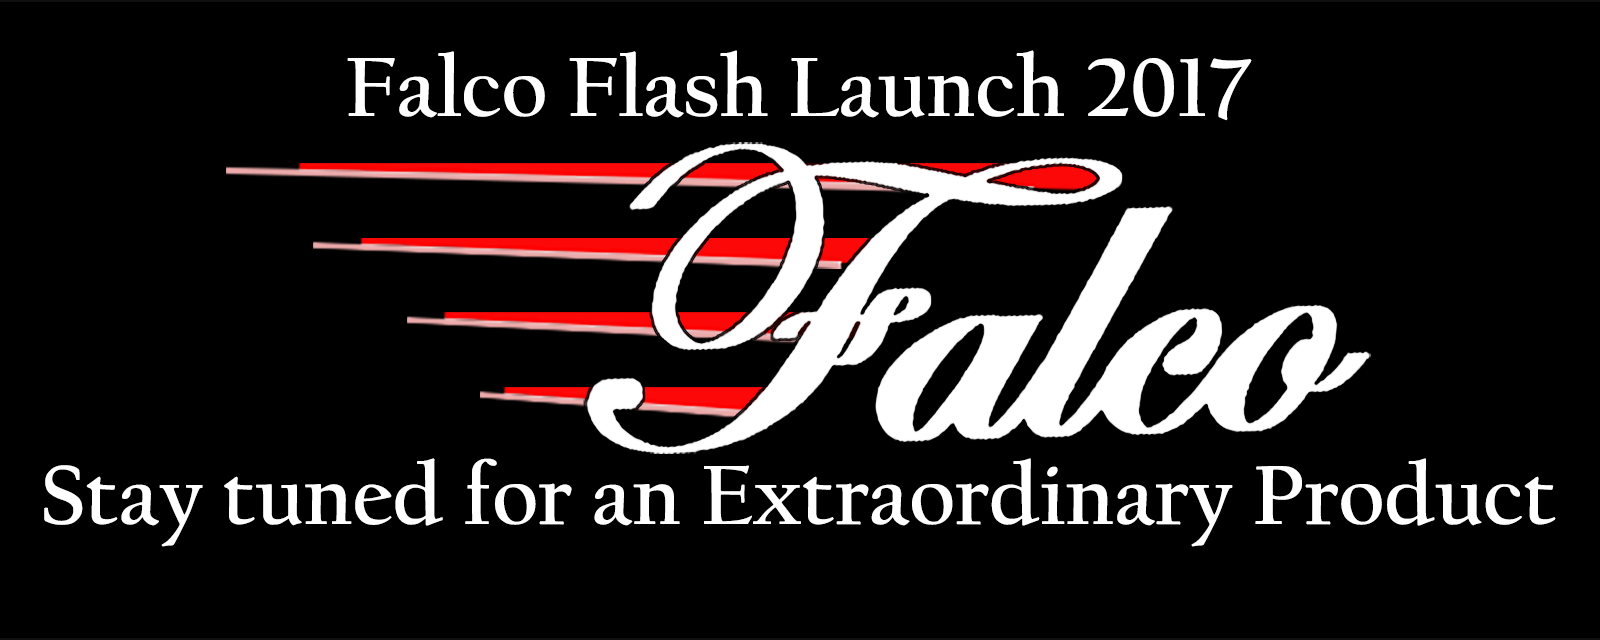 Falco 2017 Product Launch